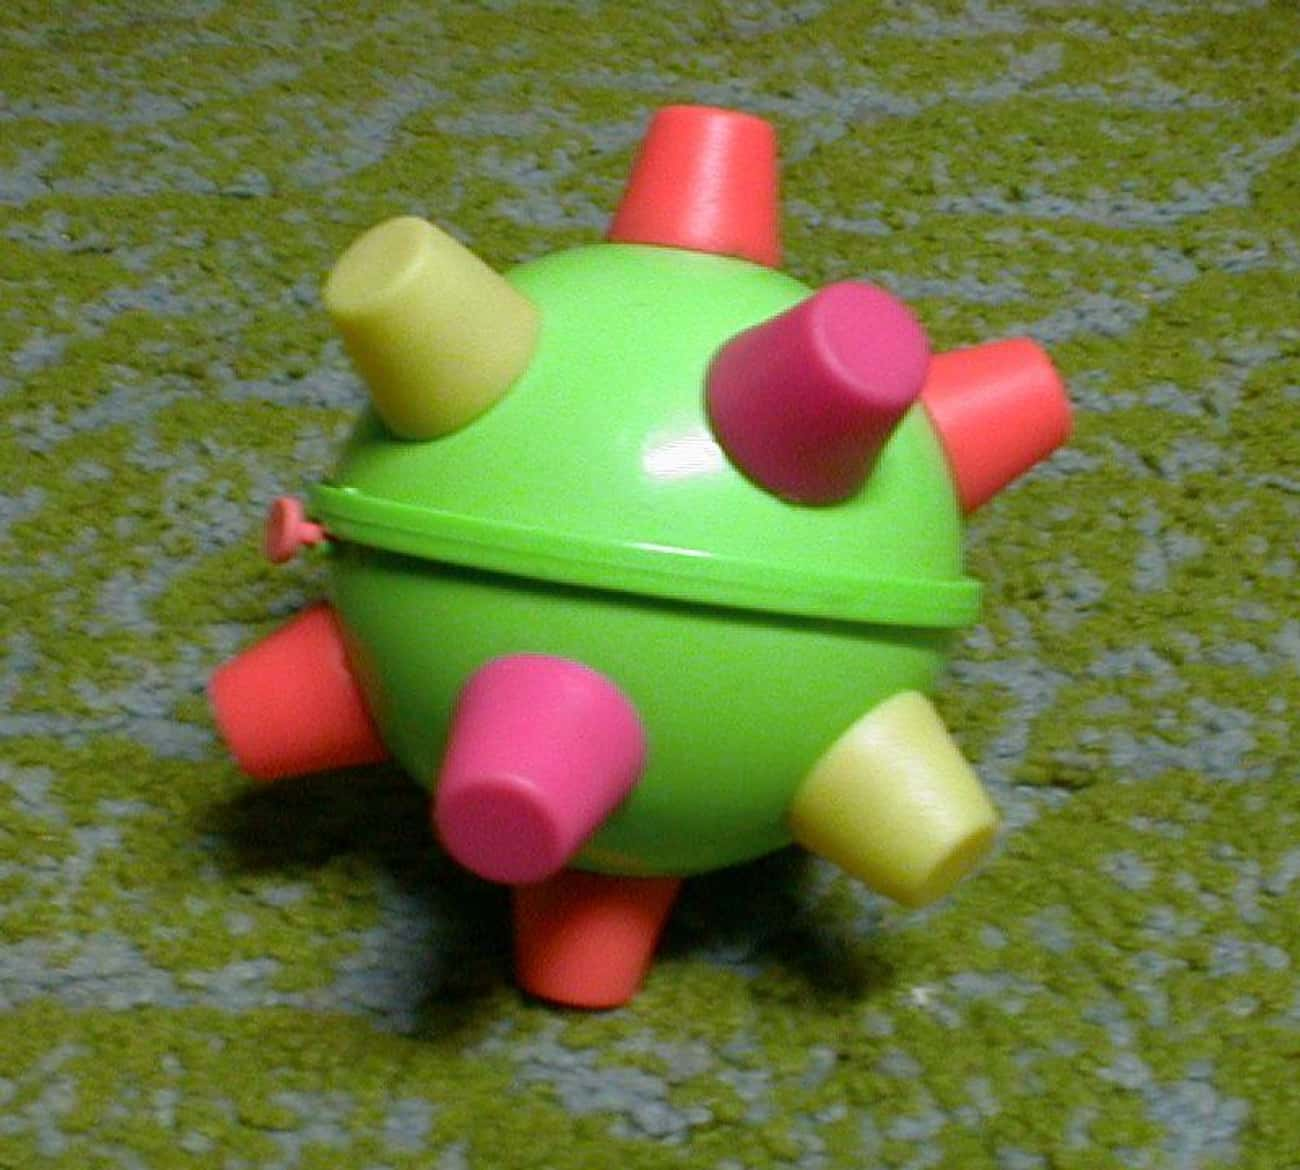 Bumble Ball is listed (or ranked) 3 on the list '90s Toys All Girls Had That Were Actually Ridiculously Dumb